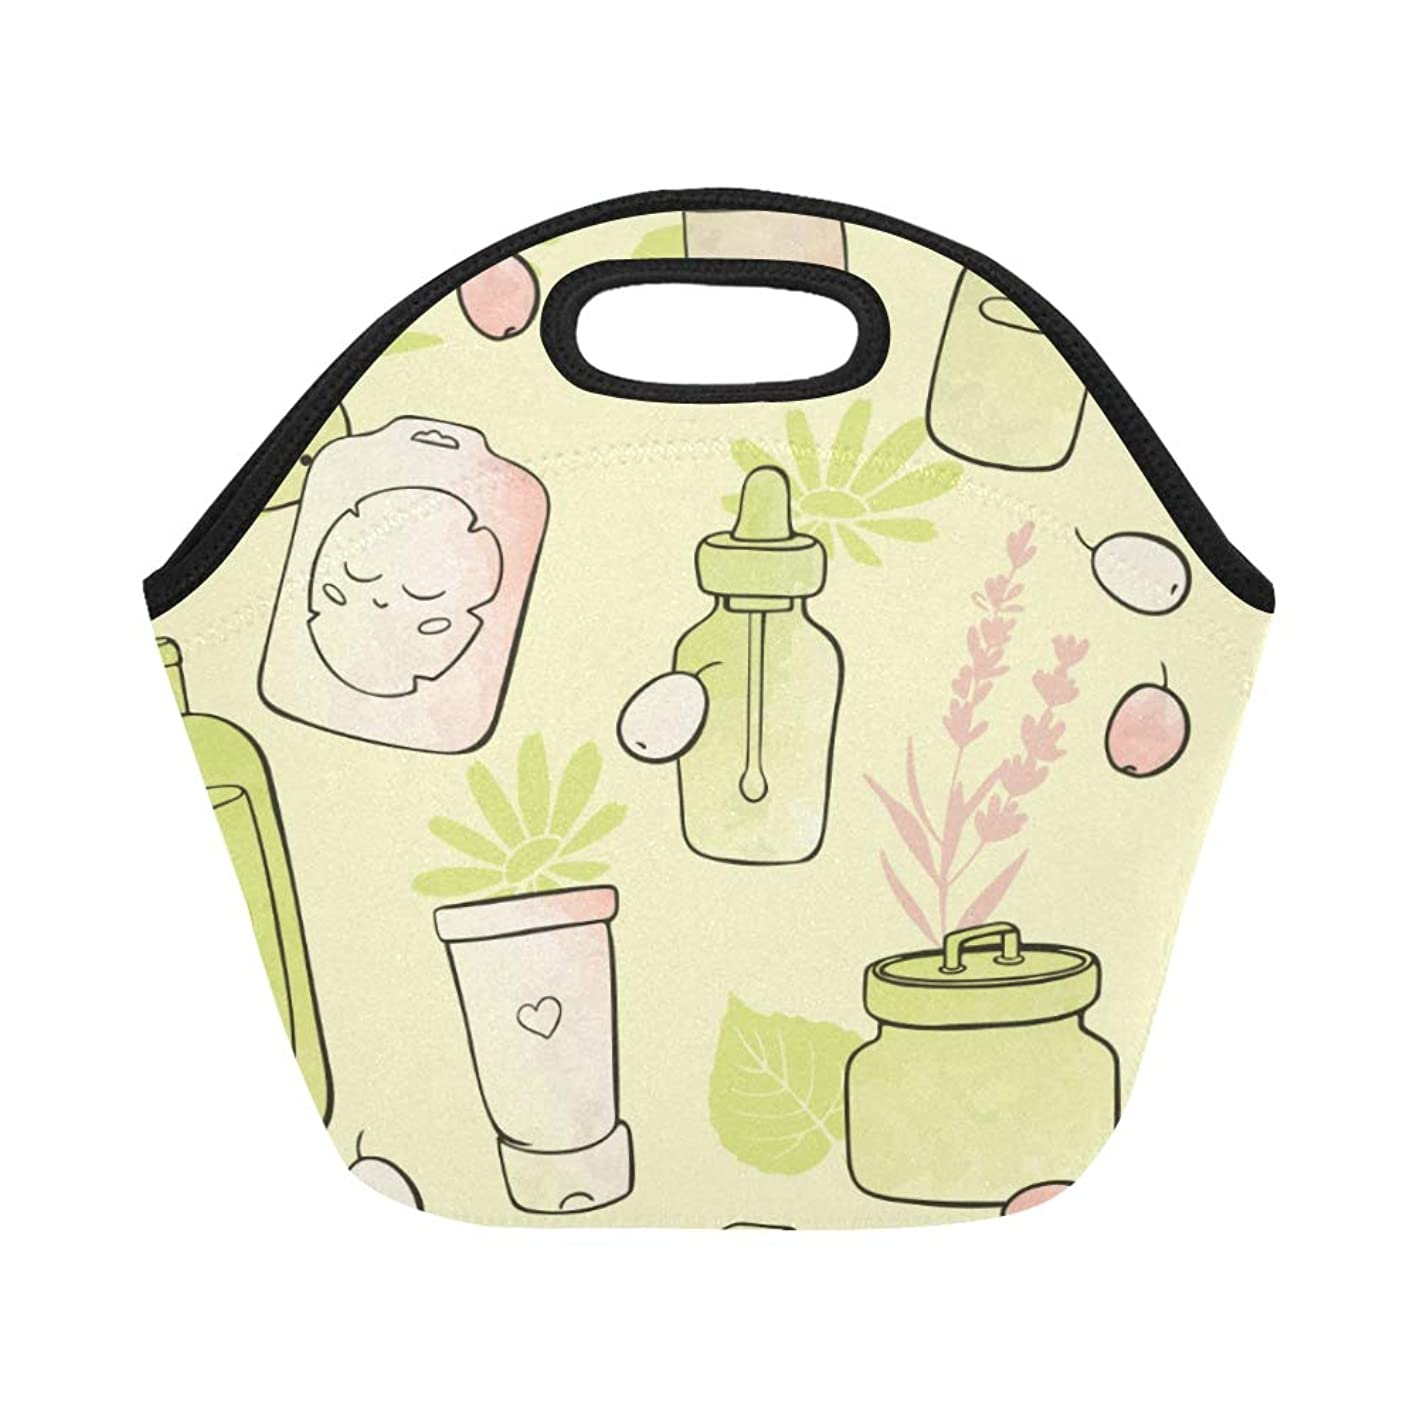 Insulated Neoprene Lunch Bag Skin Care Products Hand-painted Beauty Large Size Reusable Thermal Thick Lunch Tote Bags For Lunch Boxes For Outdoors,work, Office, School wylwrqudhvv398